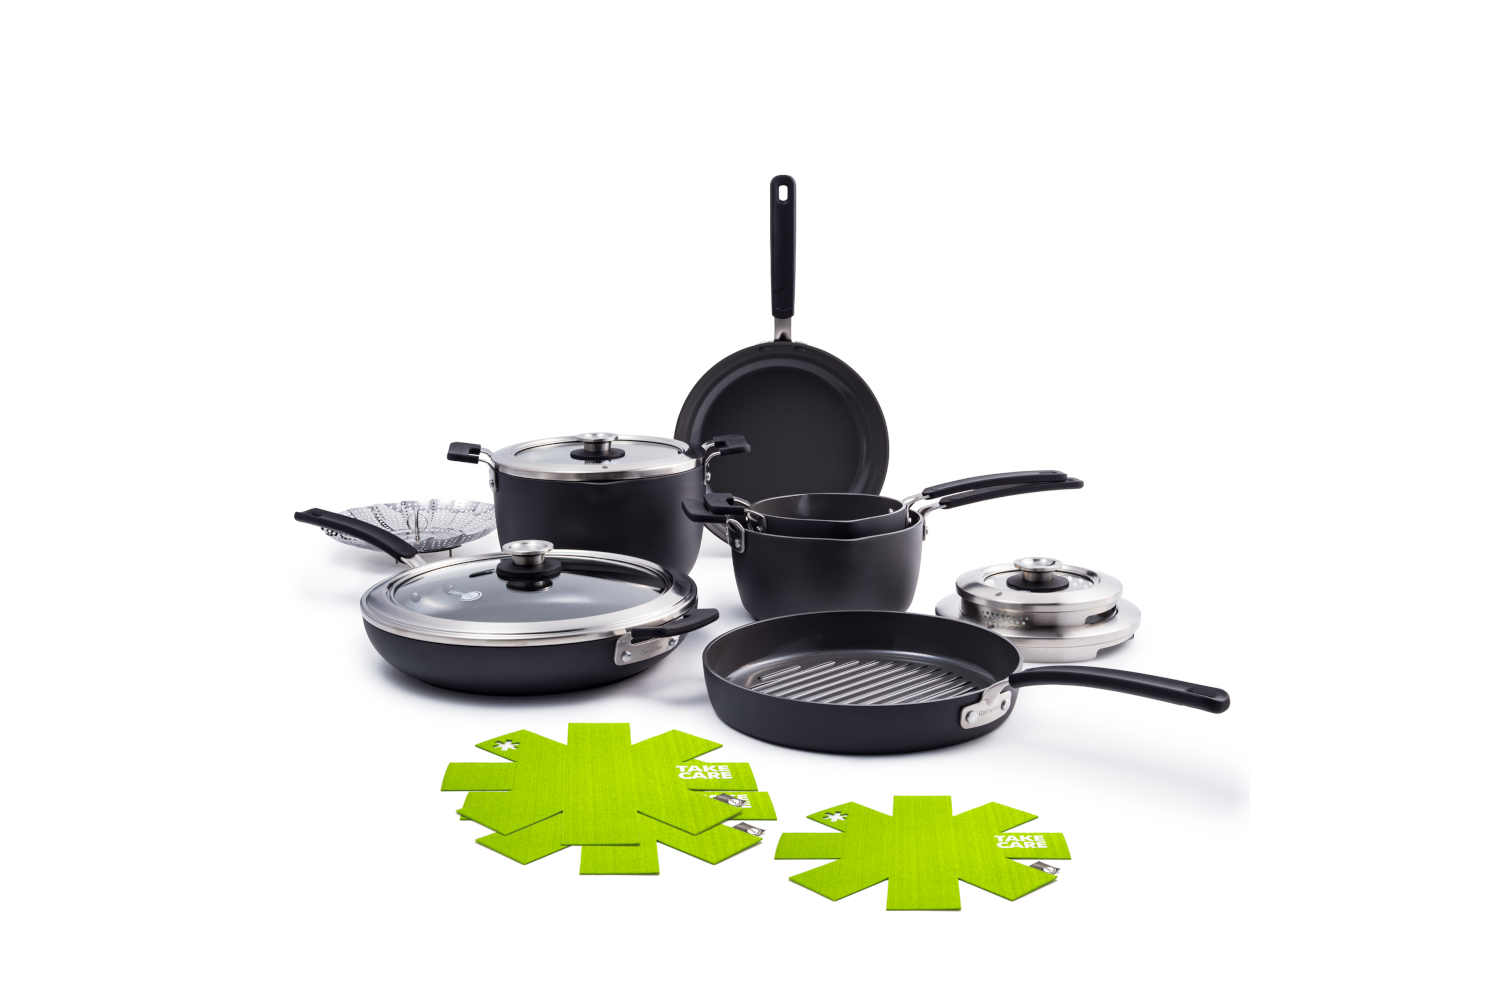 Greenpan Levels Hard Anodized 11 Piece Stackable Ceramic Nonstick Cookware Set